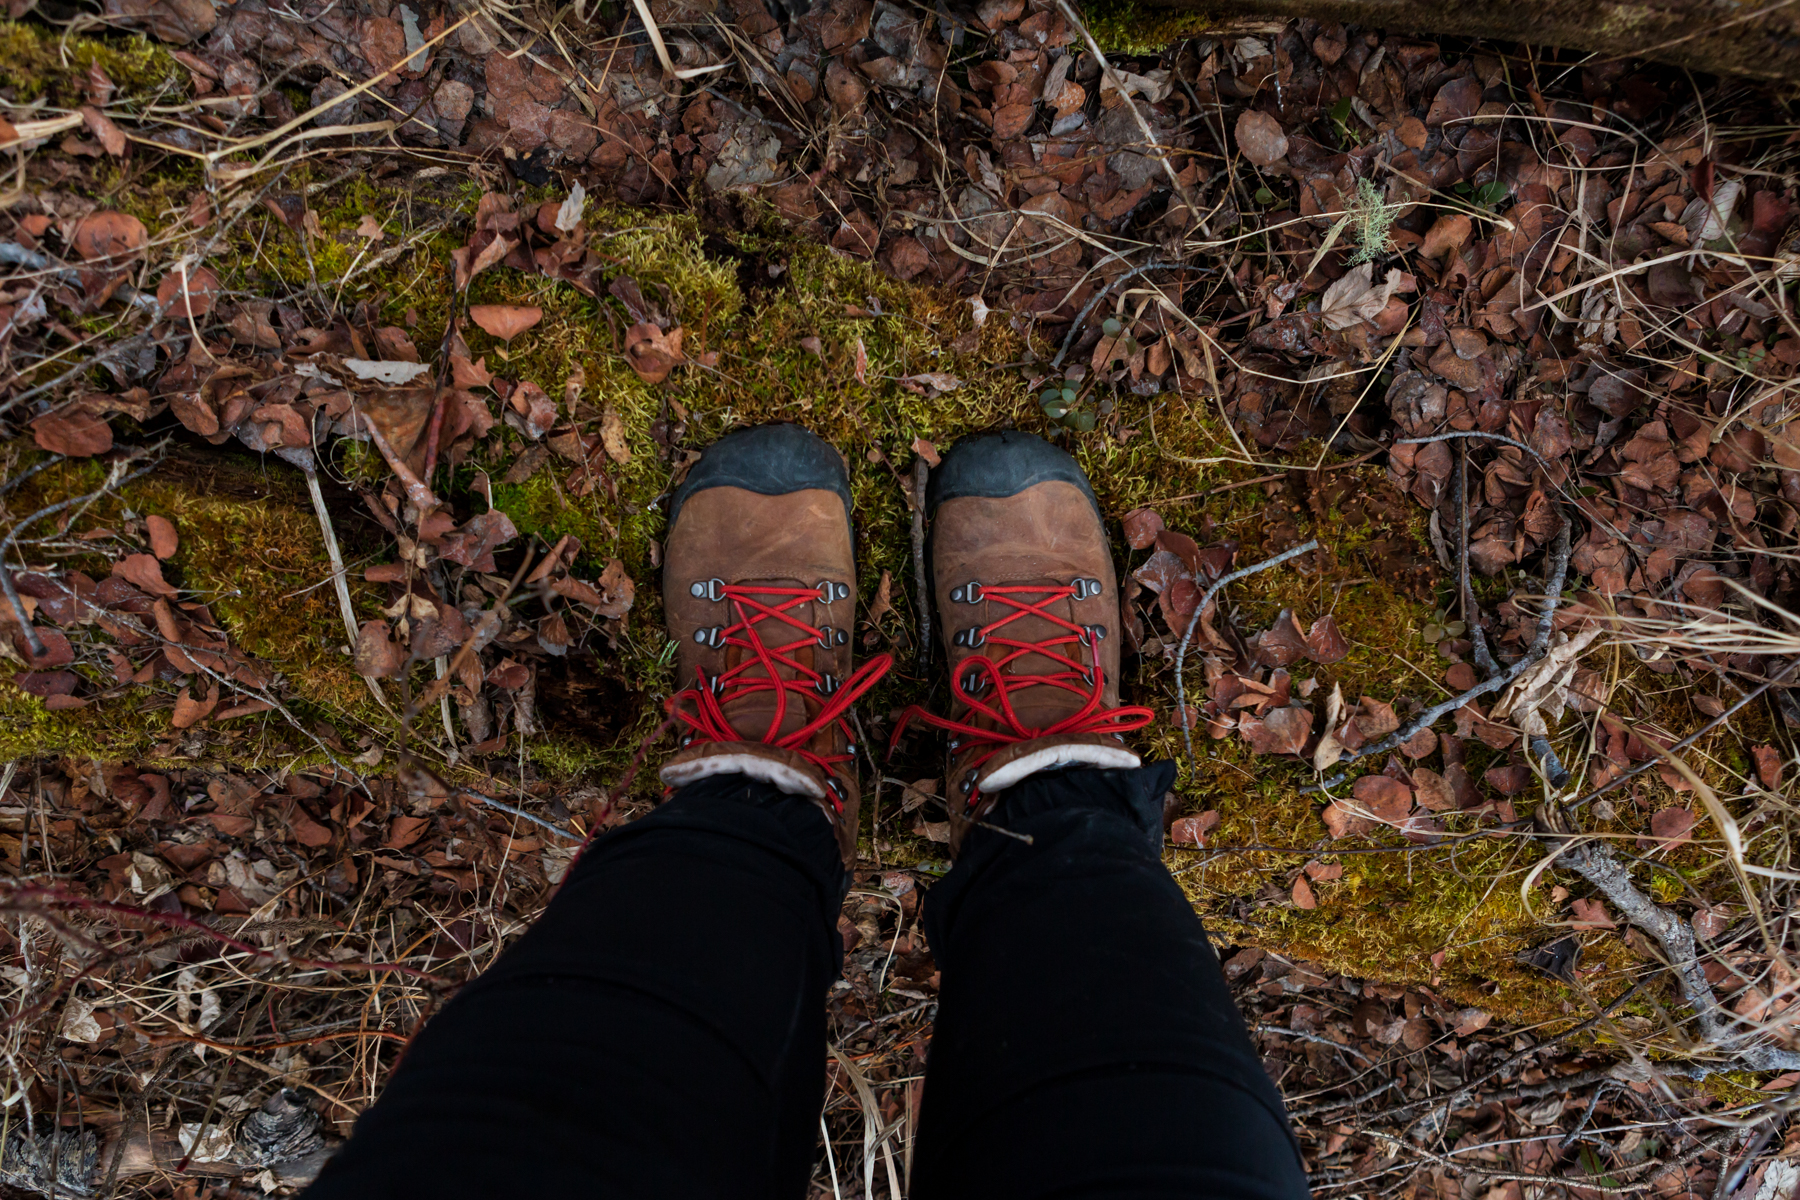 women (from the knees down) wearing hiking boots standing on a fallen, mossy tree. as she is off-trail hiking